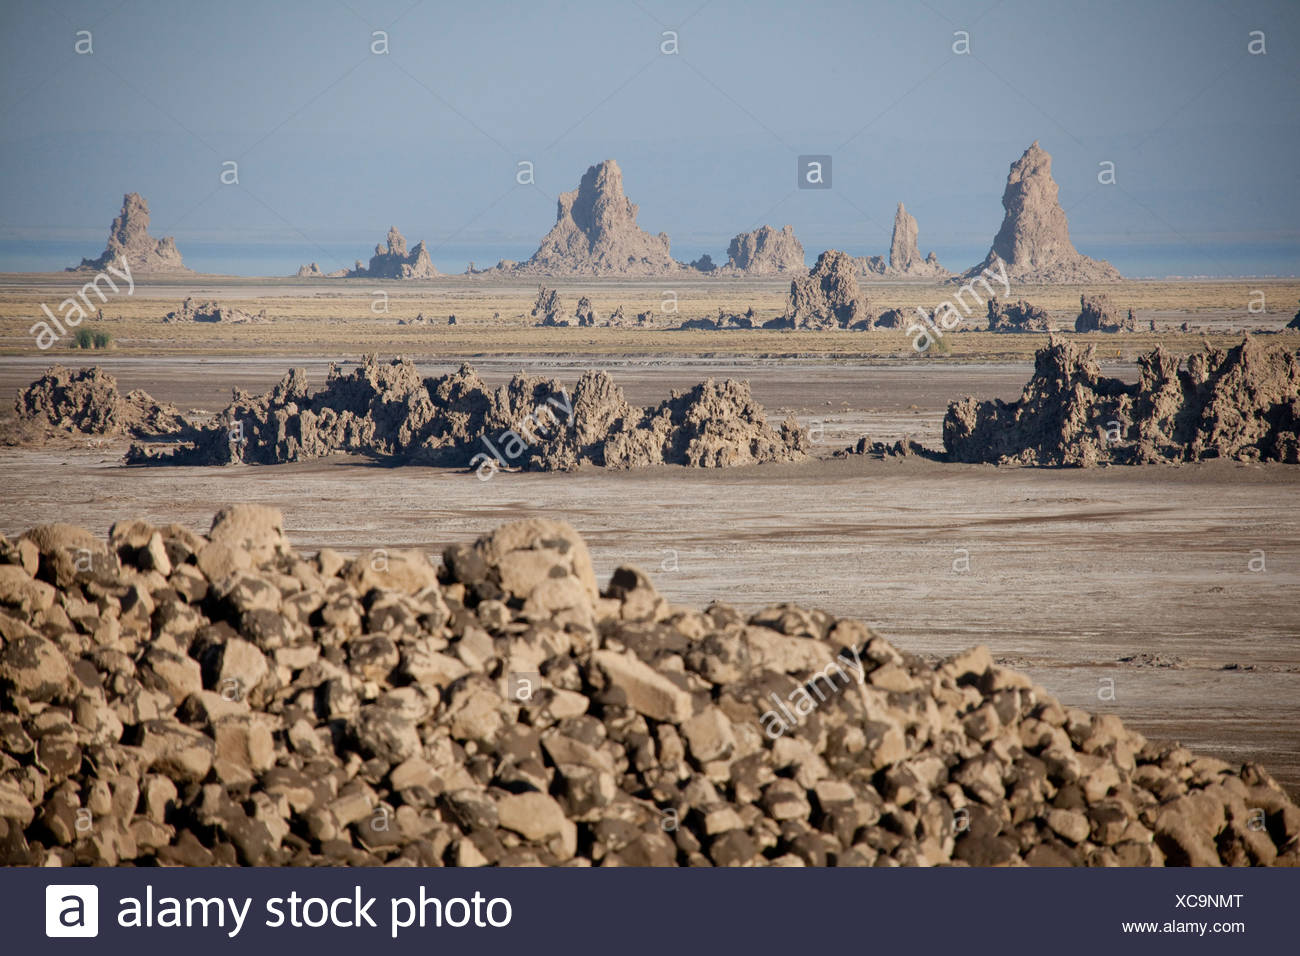 Lime chimneys, rocks, cliffs, cliff formation, rock, Abbesee, Djibouti, Africa, mountain, mountains, scenery, landscape, nature, - Stock Image